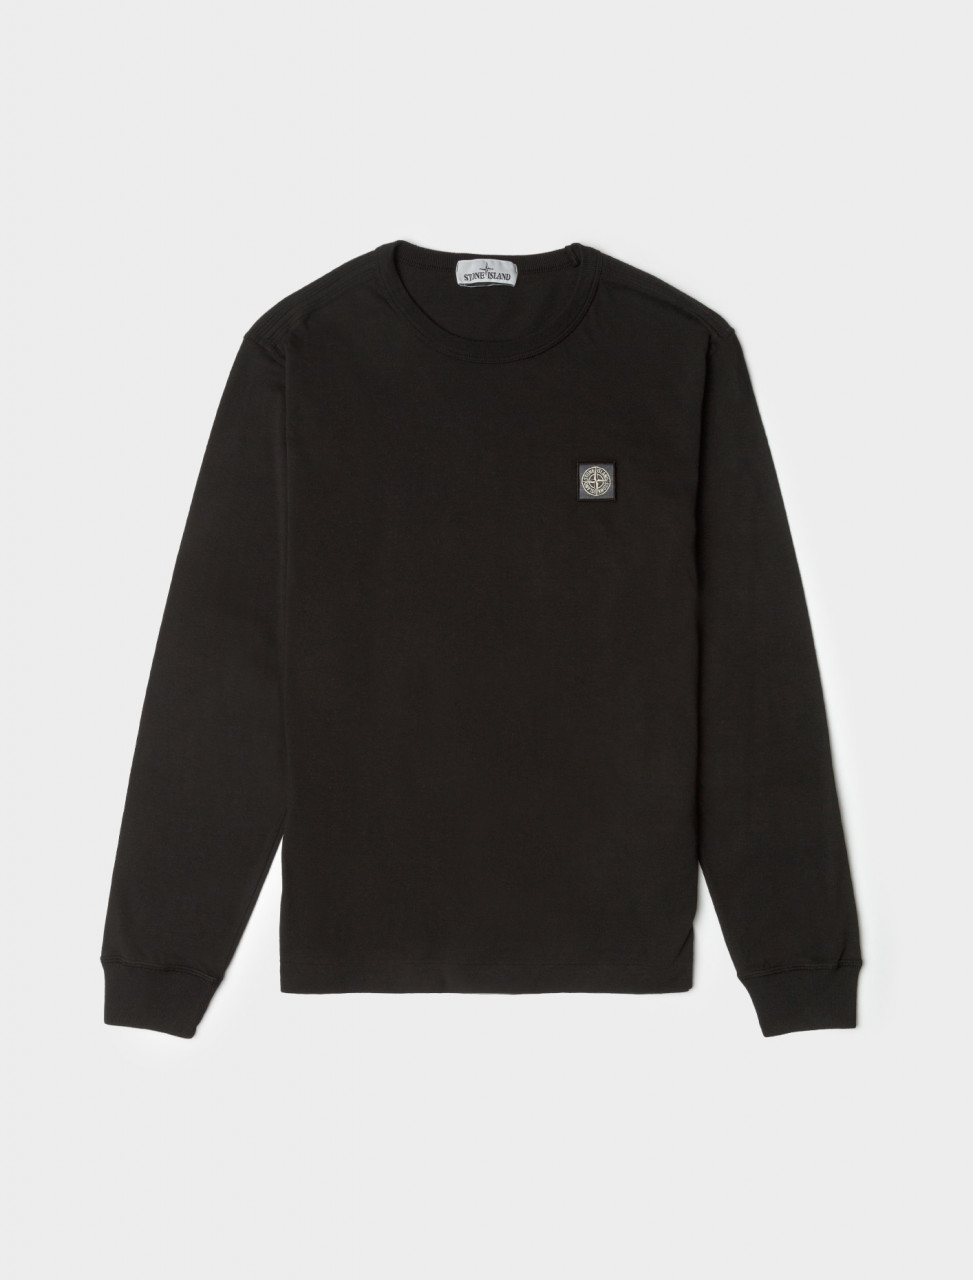 Fissato Dyed Long Sleeve T-Shirt in Black